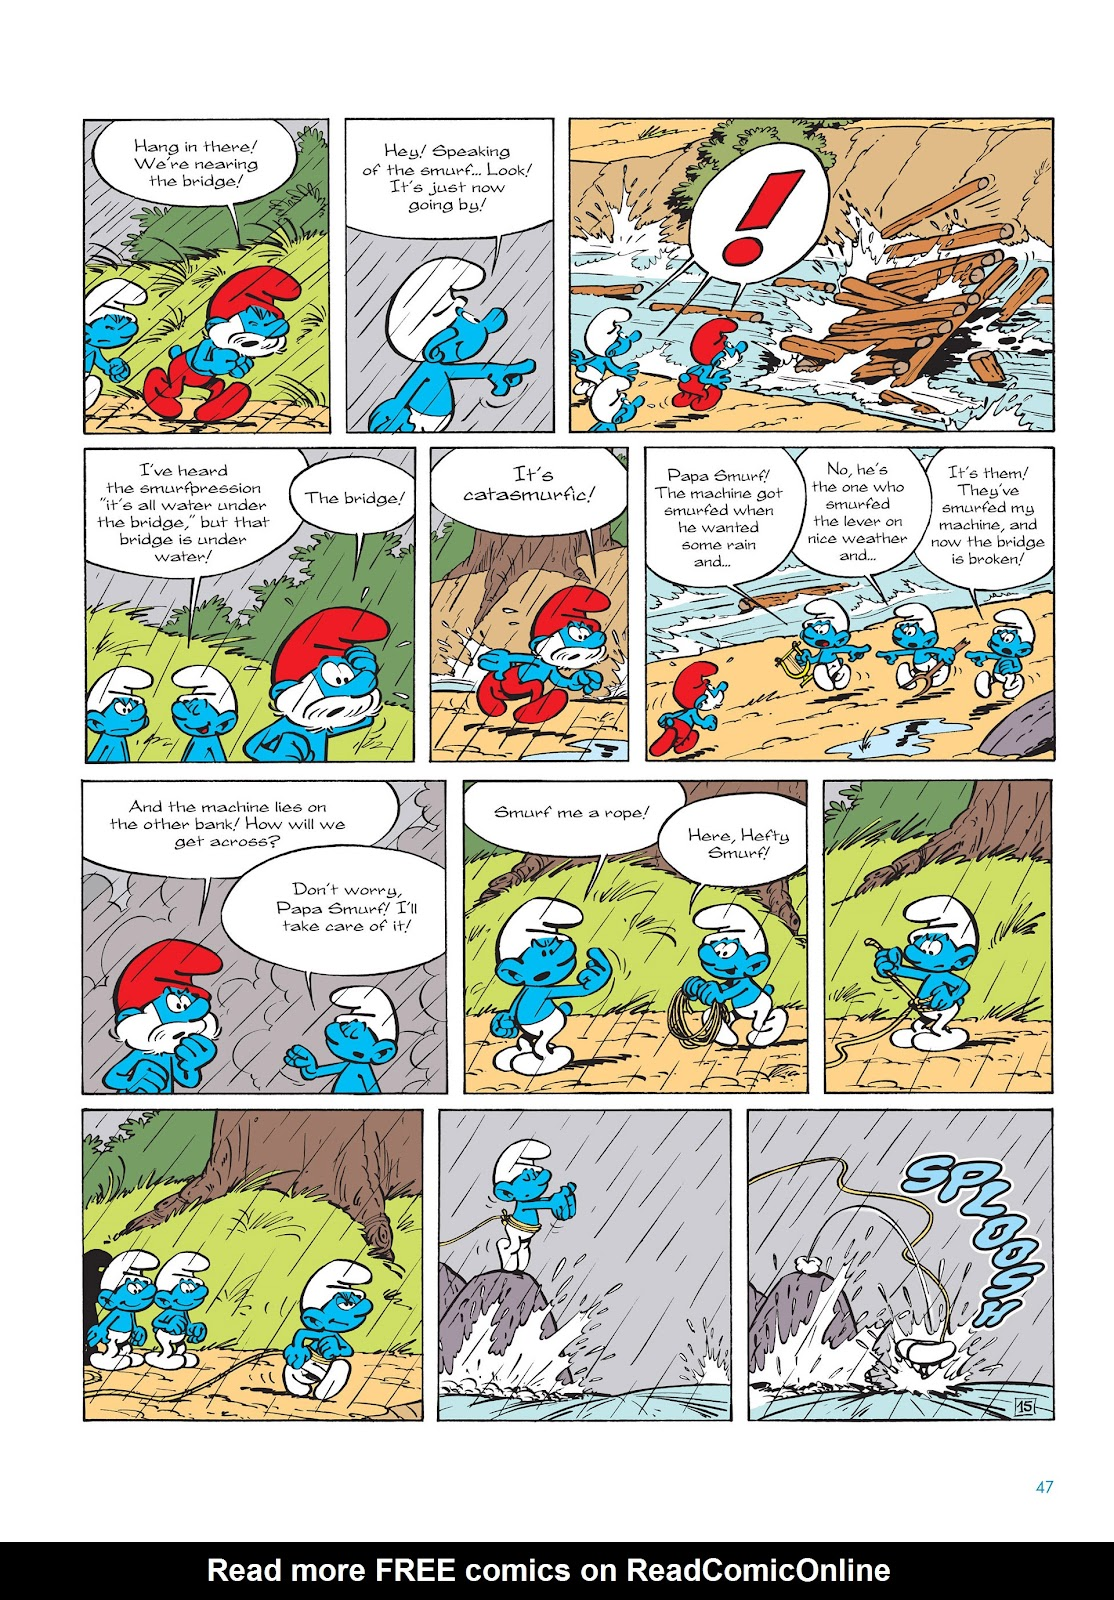 Read online The Smurfs comic -  Issue #14 - 48